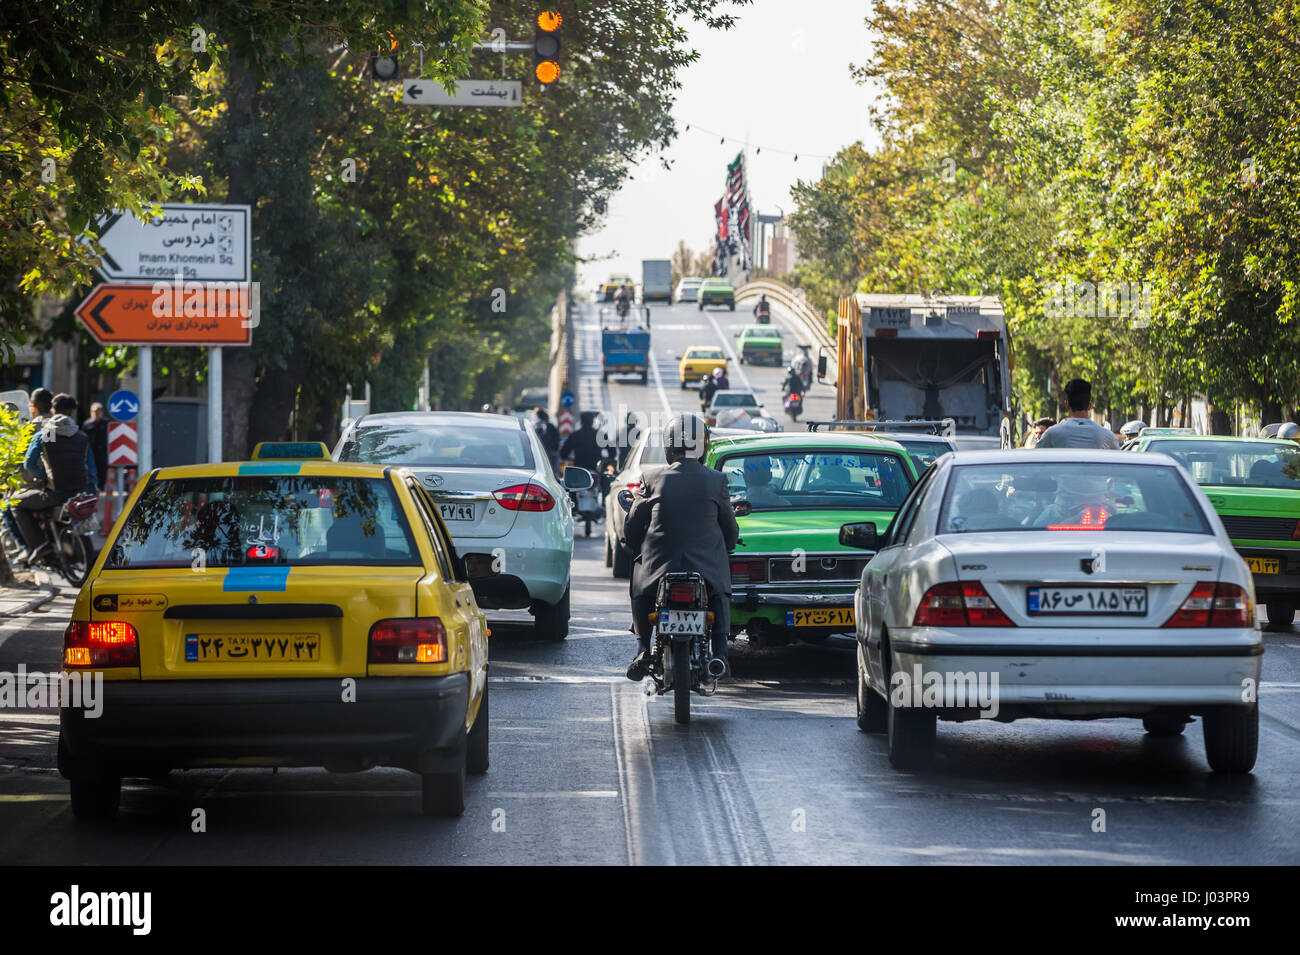 Traffic on a street in Tehran city, capital of Iran and Tehran Province - Stock Image